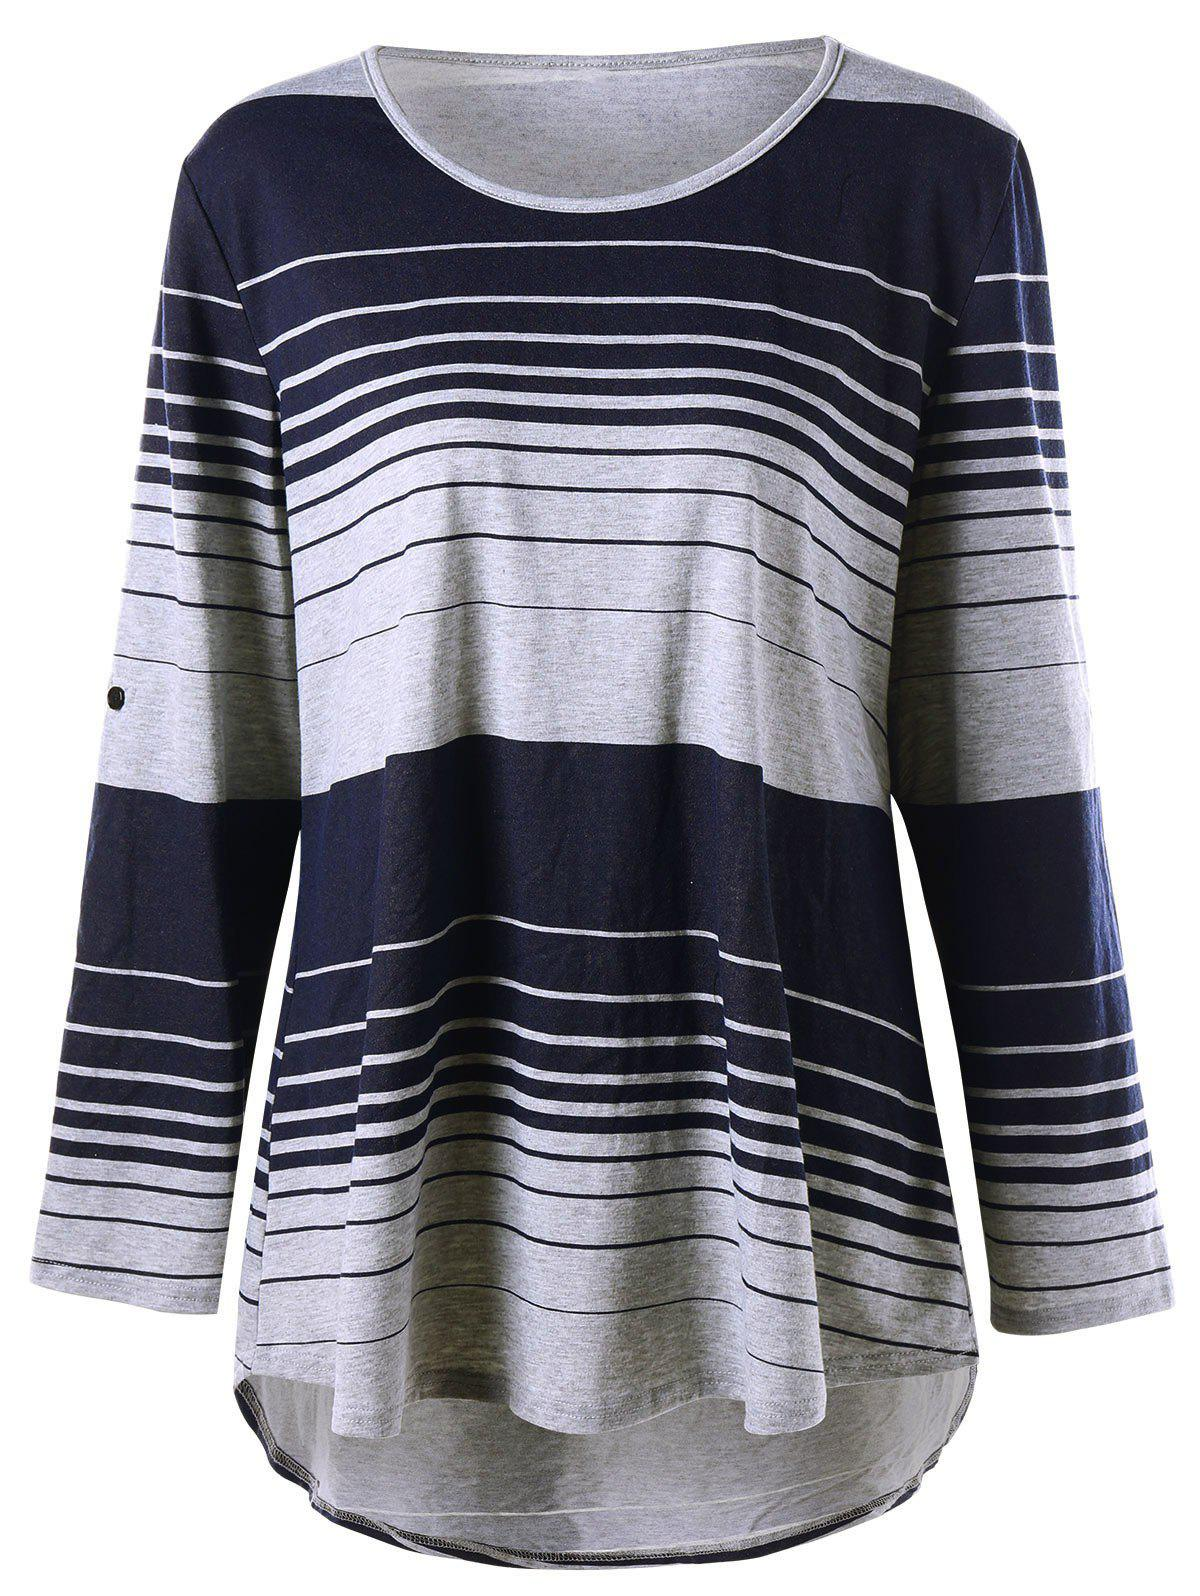 Plus Size  Long Sleeve Striped High Low T-shirtWOMEN<br><br>Size: 4XL; Color: COLORMIX; Material: Cotton,Polyester; Shirt Length: Long; Sleeve Length: Full; Collar: Scoop Neck; Style: Casual; Season: Fall,Spring; Pattern Type: Striped; Weight: 0.3200kg; Package Contents: 1 x T-shirt;